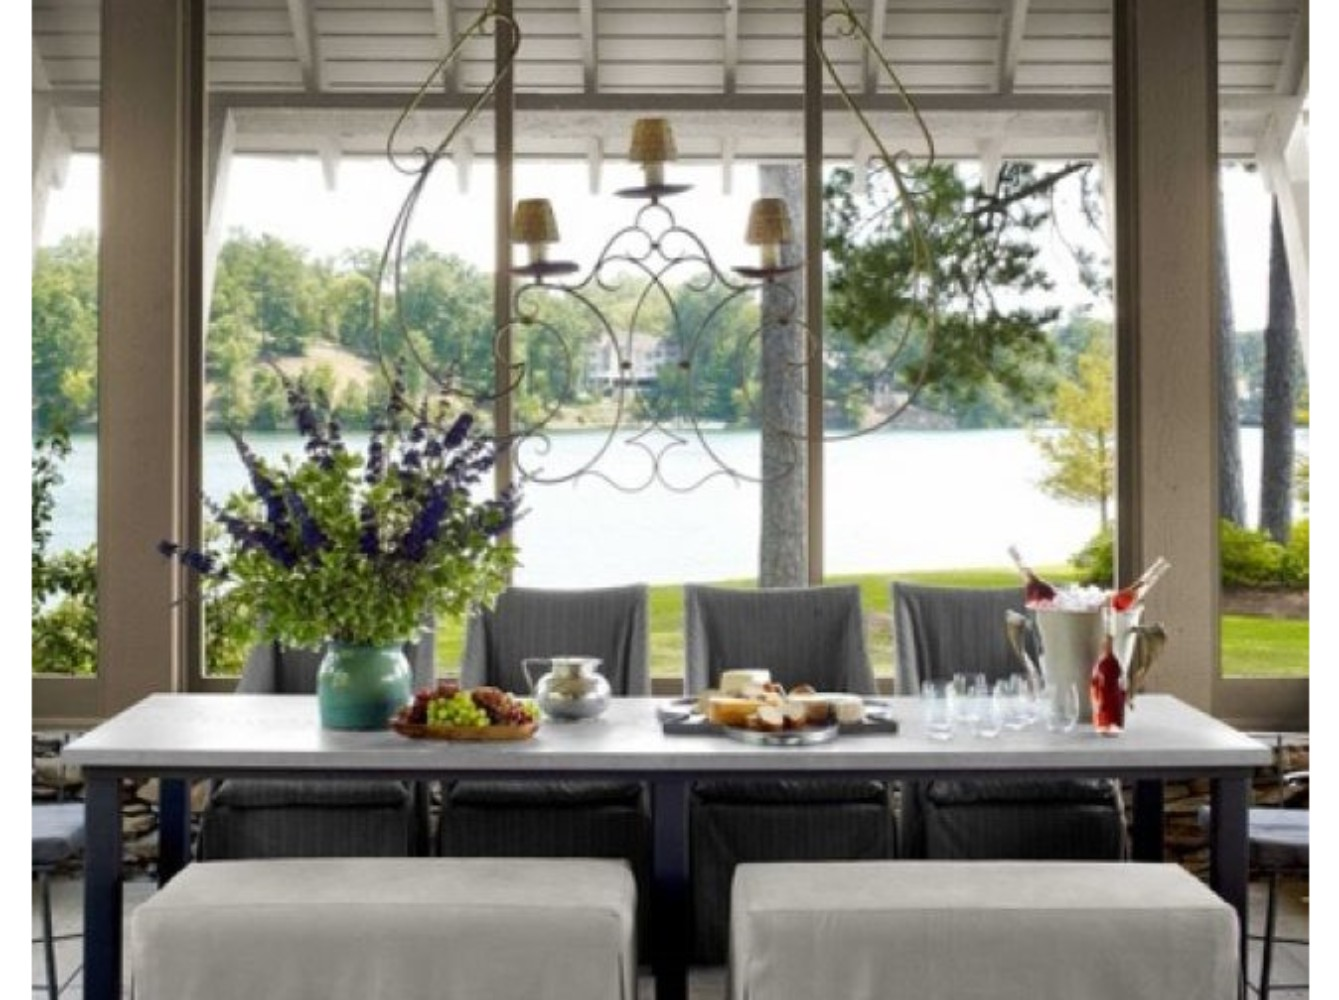 10 Different Ways to Make A Statement in Your Dining Room